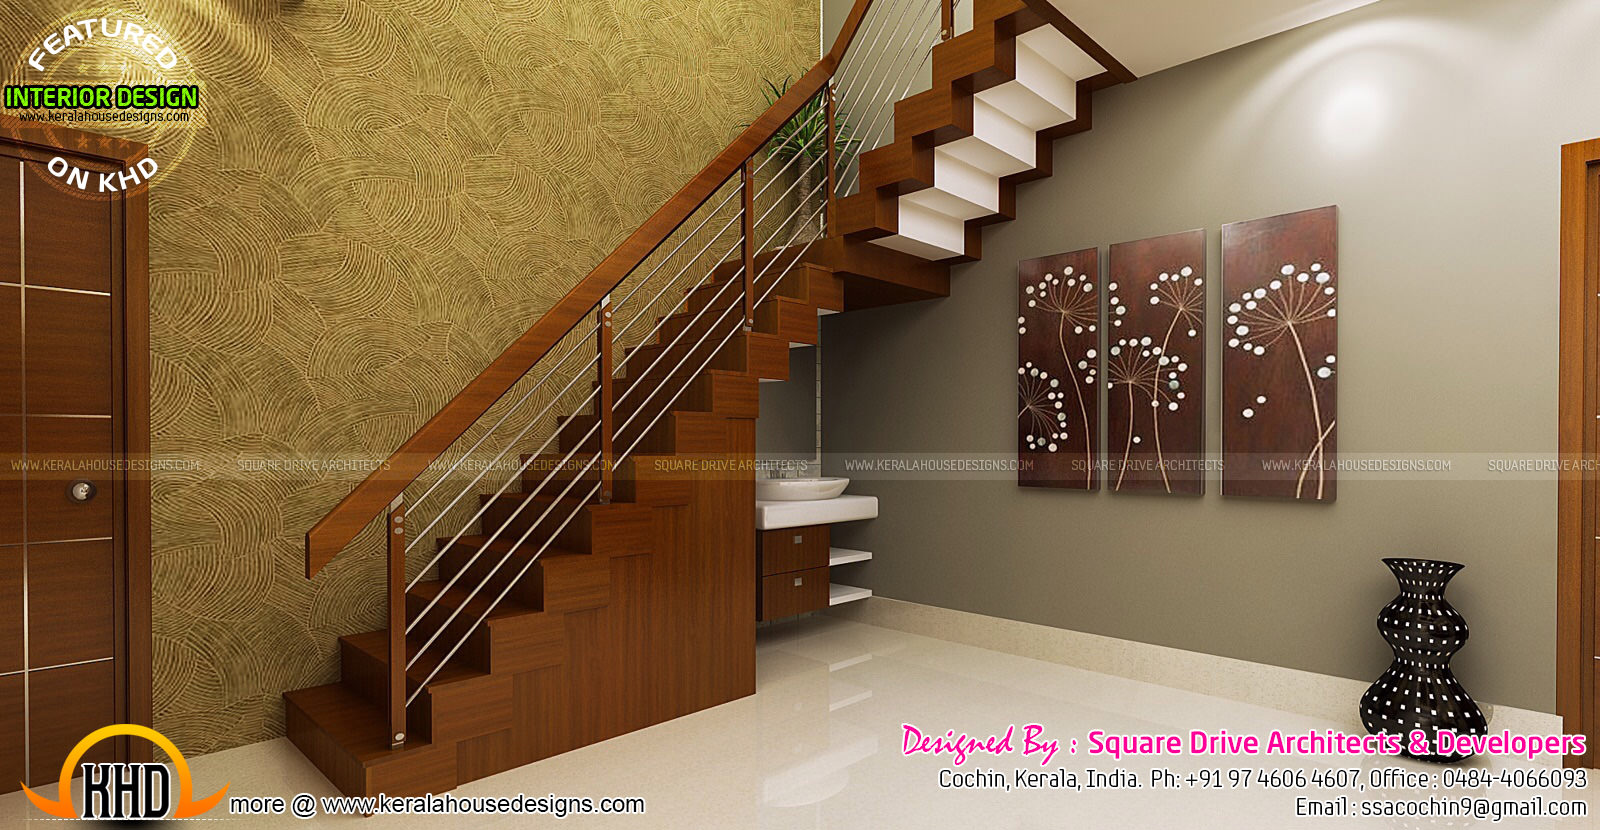 Stair area upper living bedroom interiors kerala home design and floor plans Interior design ideas for kerala houses